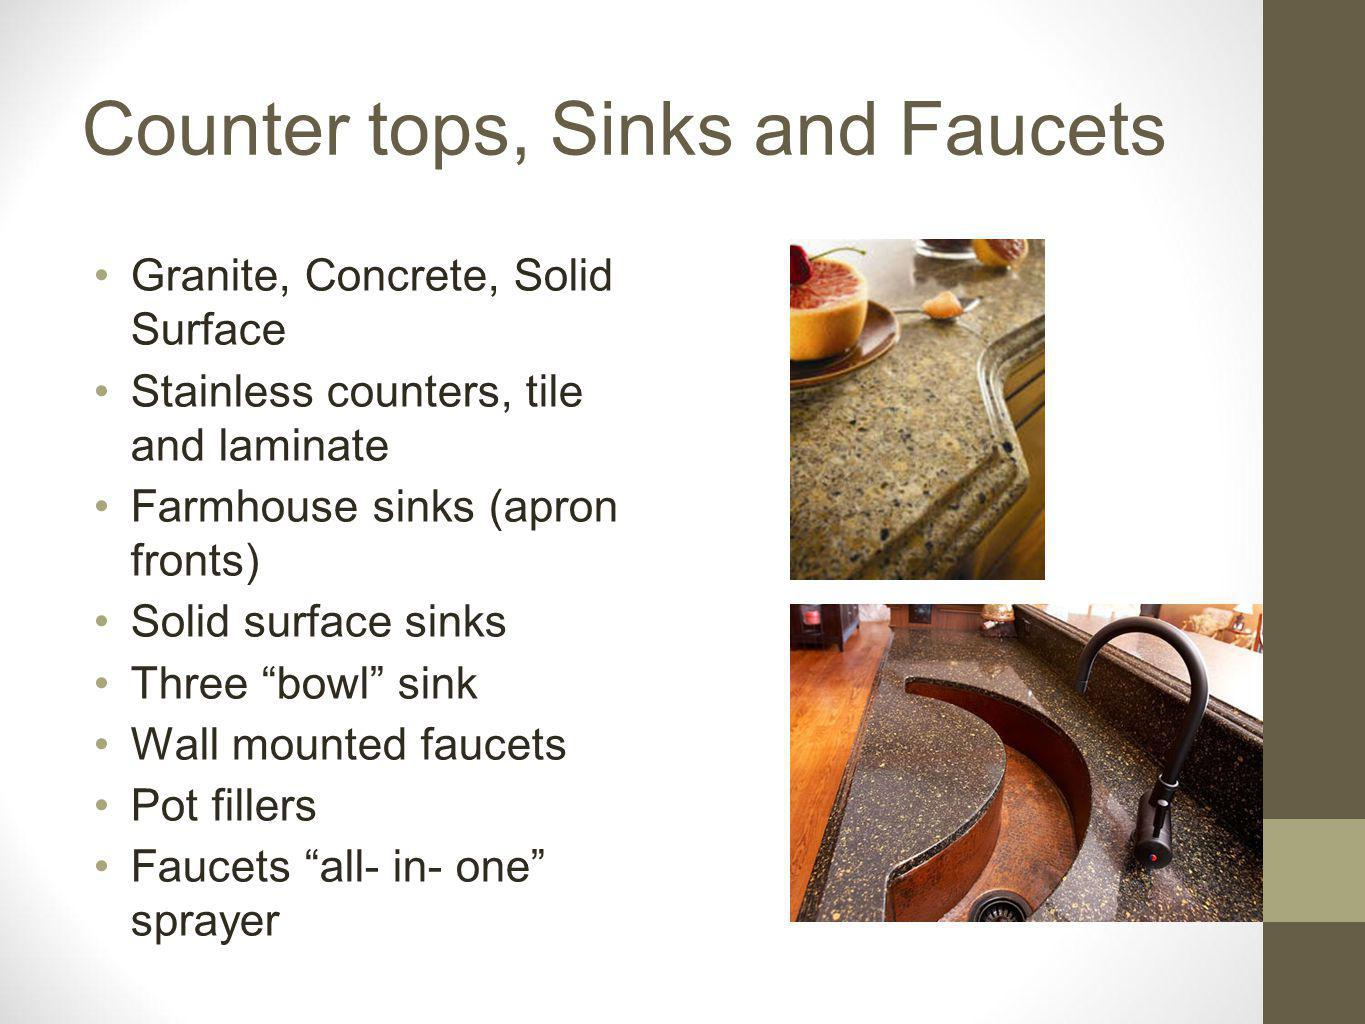 Counter tops, Sinks and Faucets Granite, Concrete, Solid Surface Stainless counters, tile and laminate Farmhouse sinks (apron fronts) Solid surface sinks Three bowl sink Wall mounted faucets Pot fillers Faucets all- in- one sprayer